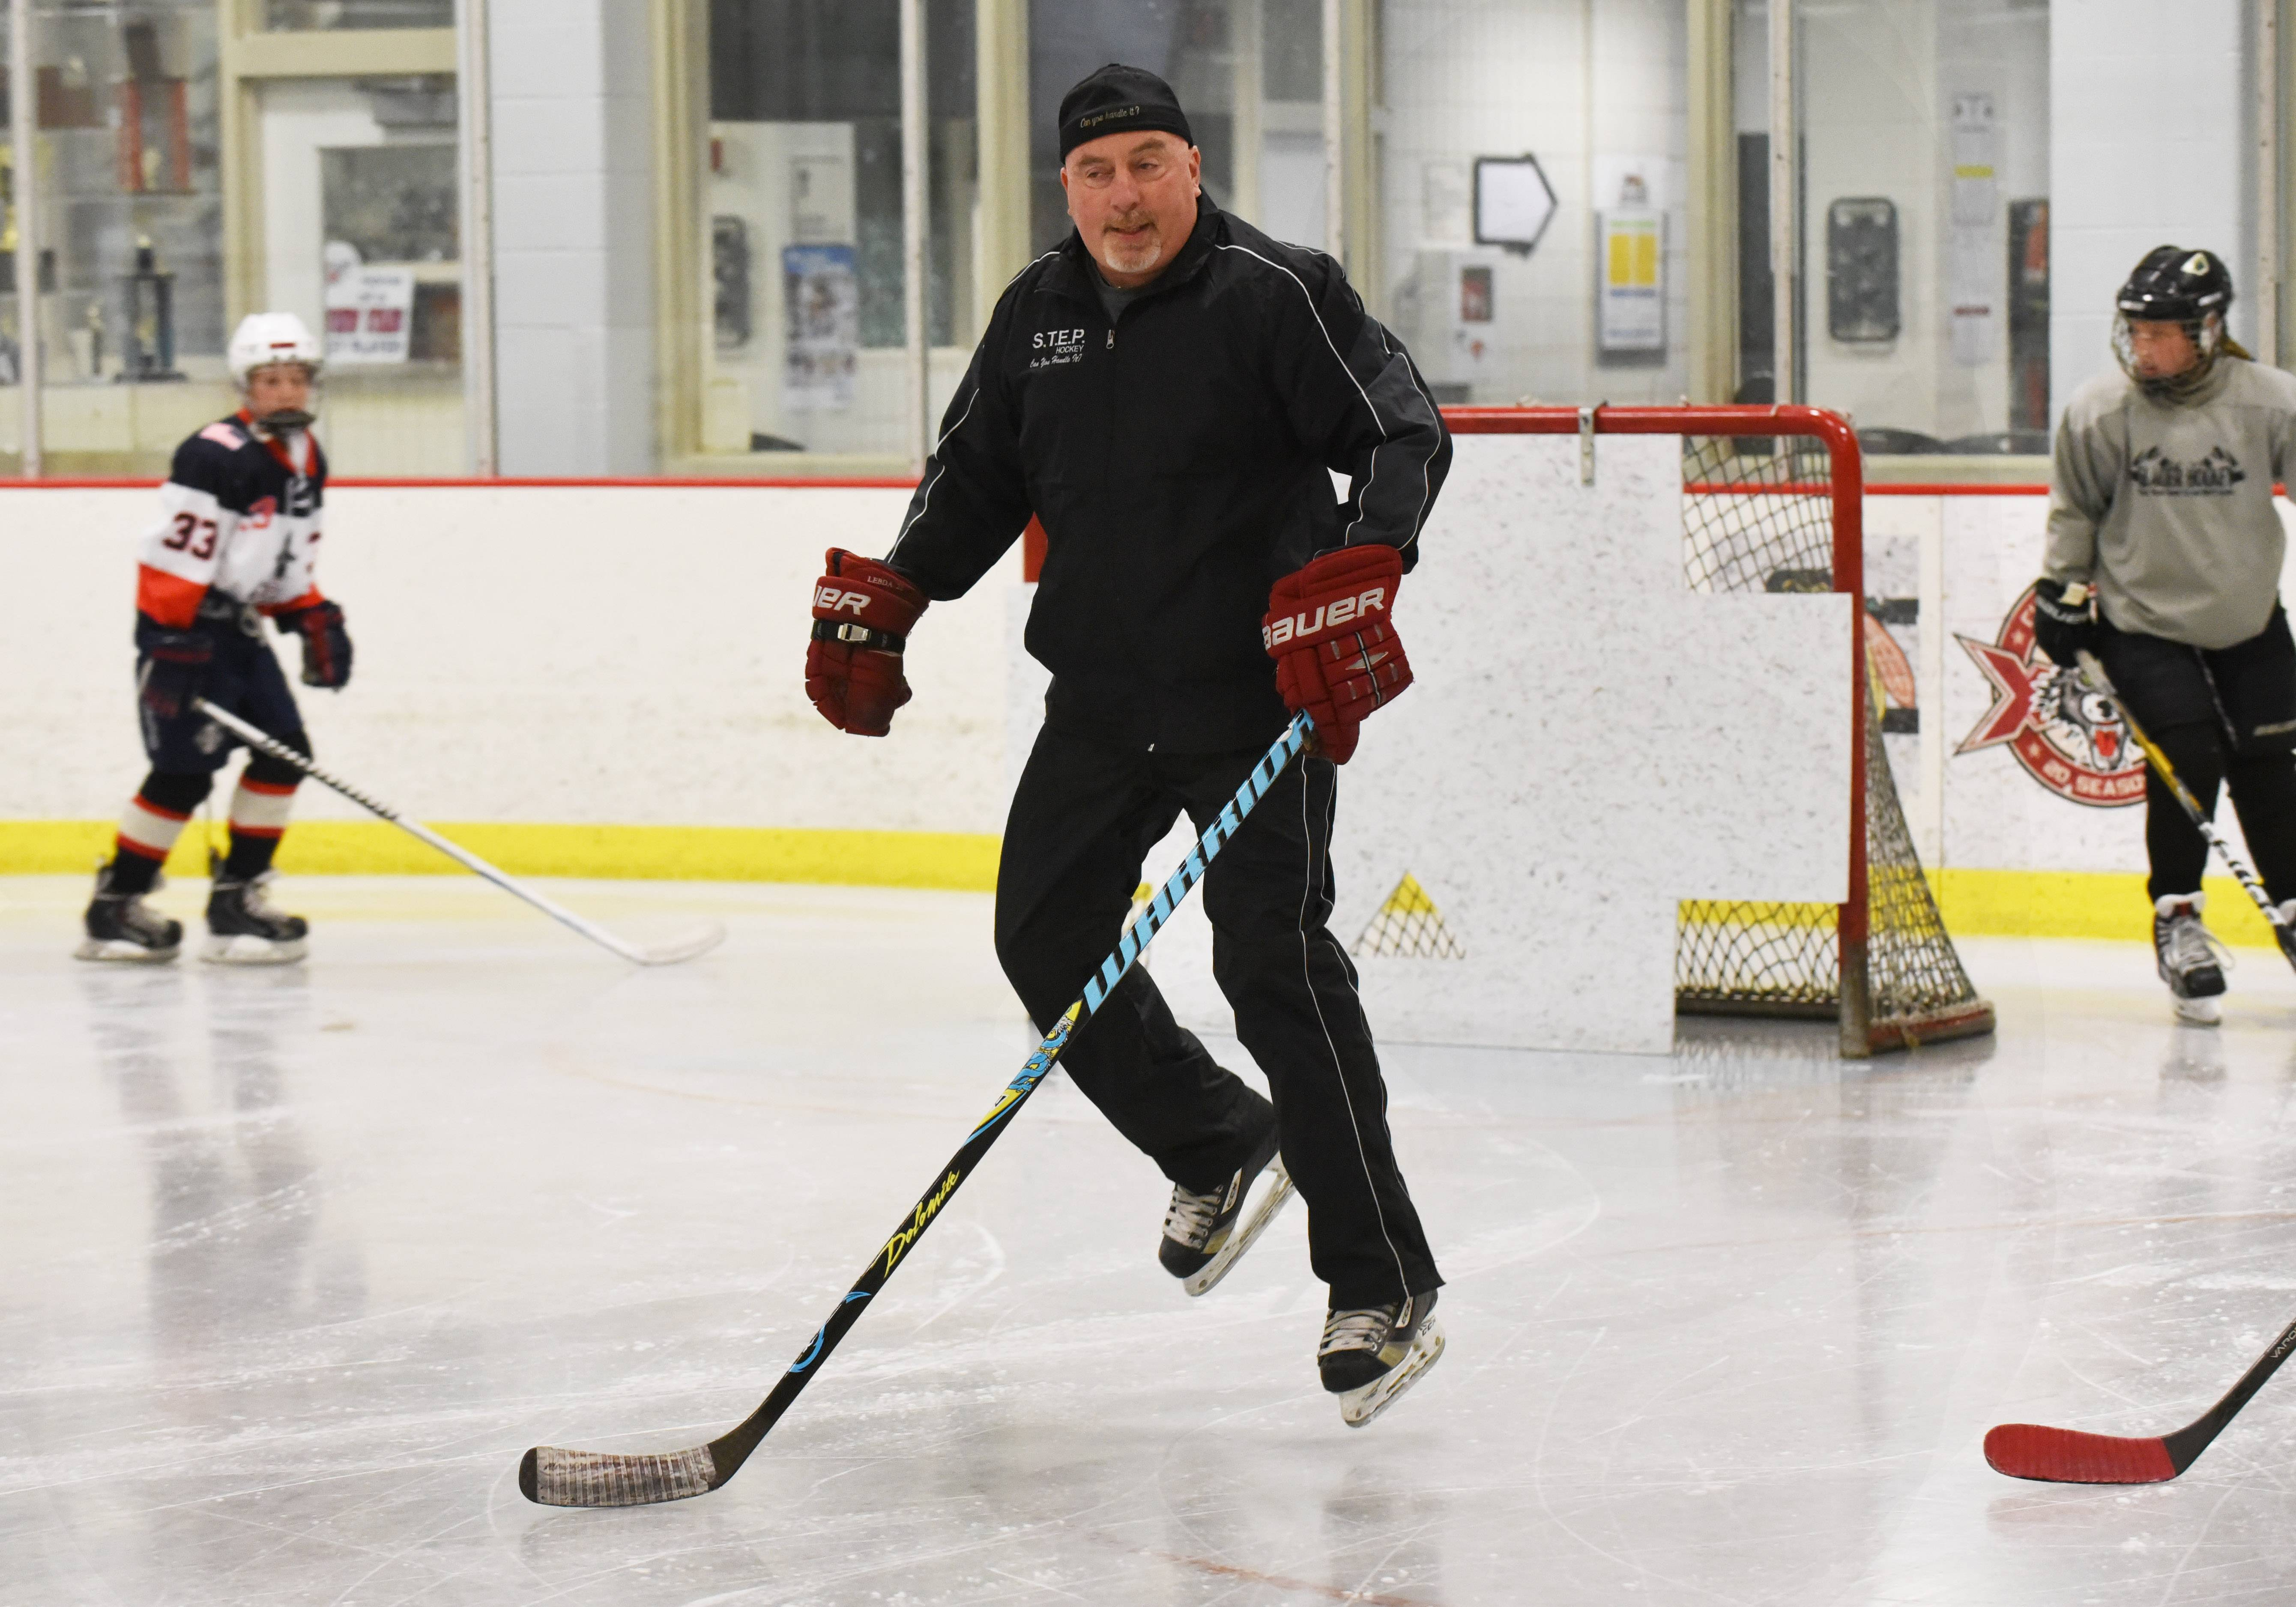 Sylvain Turcotte of Buffalo Grove has been coaching youth hockey in Glenview for 30 years. As the investigation against Blackhawks star Patrick Kane unfolds, coaches and parents are minimizing what they say about the situation to youths.